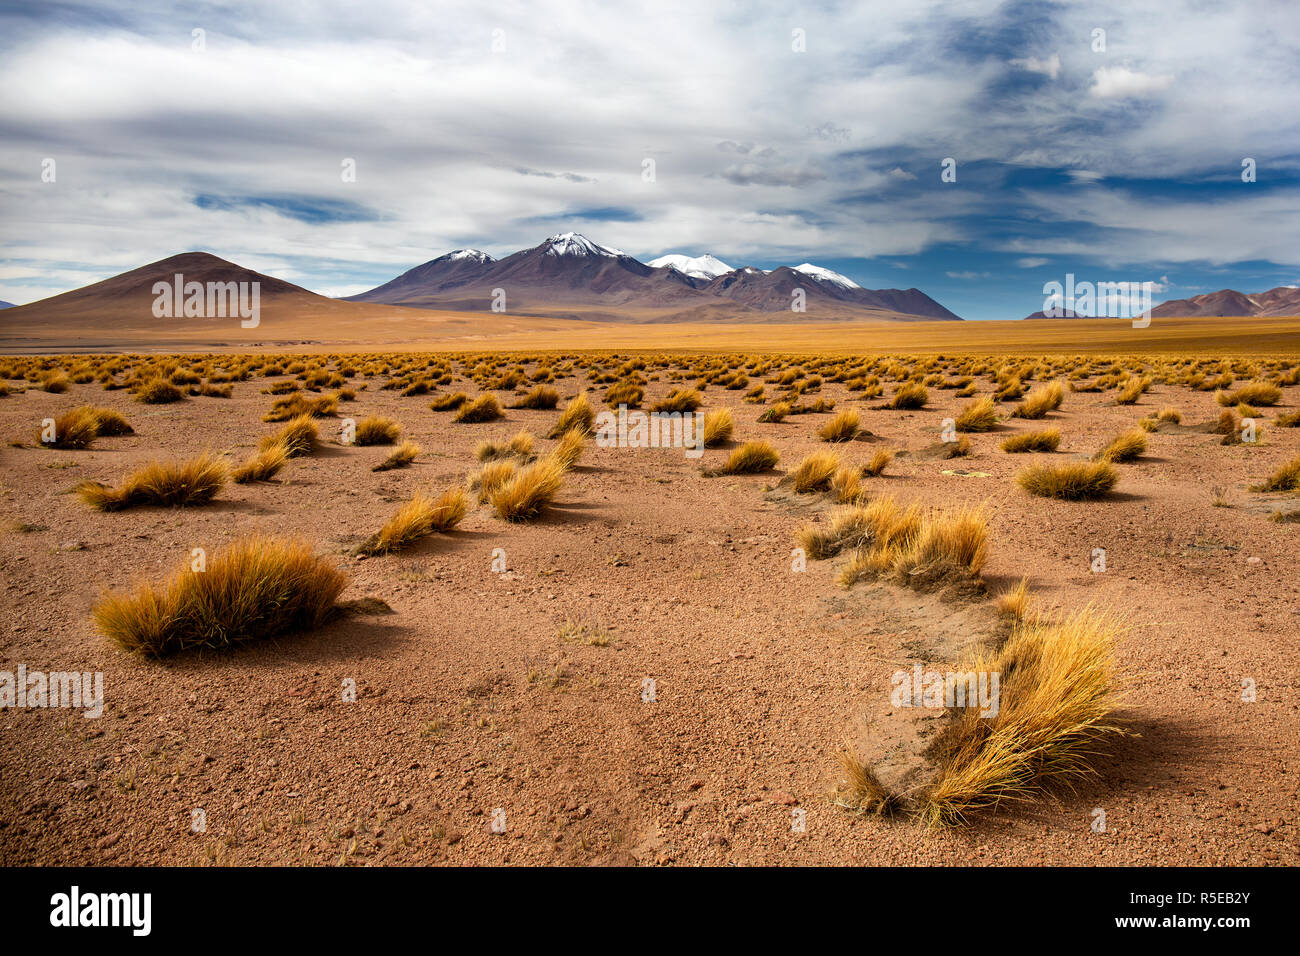 The Vast Landscape of the Altiplano in the Potosi Department of Bolivia - Stock Image